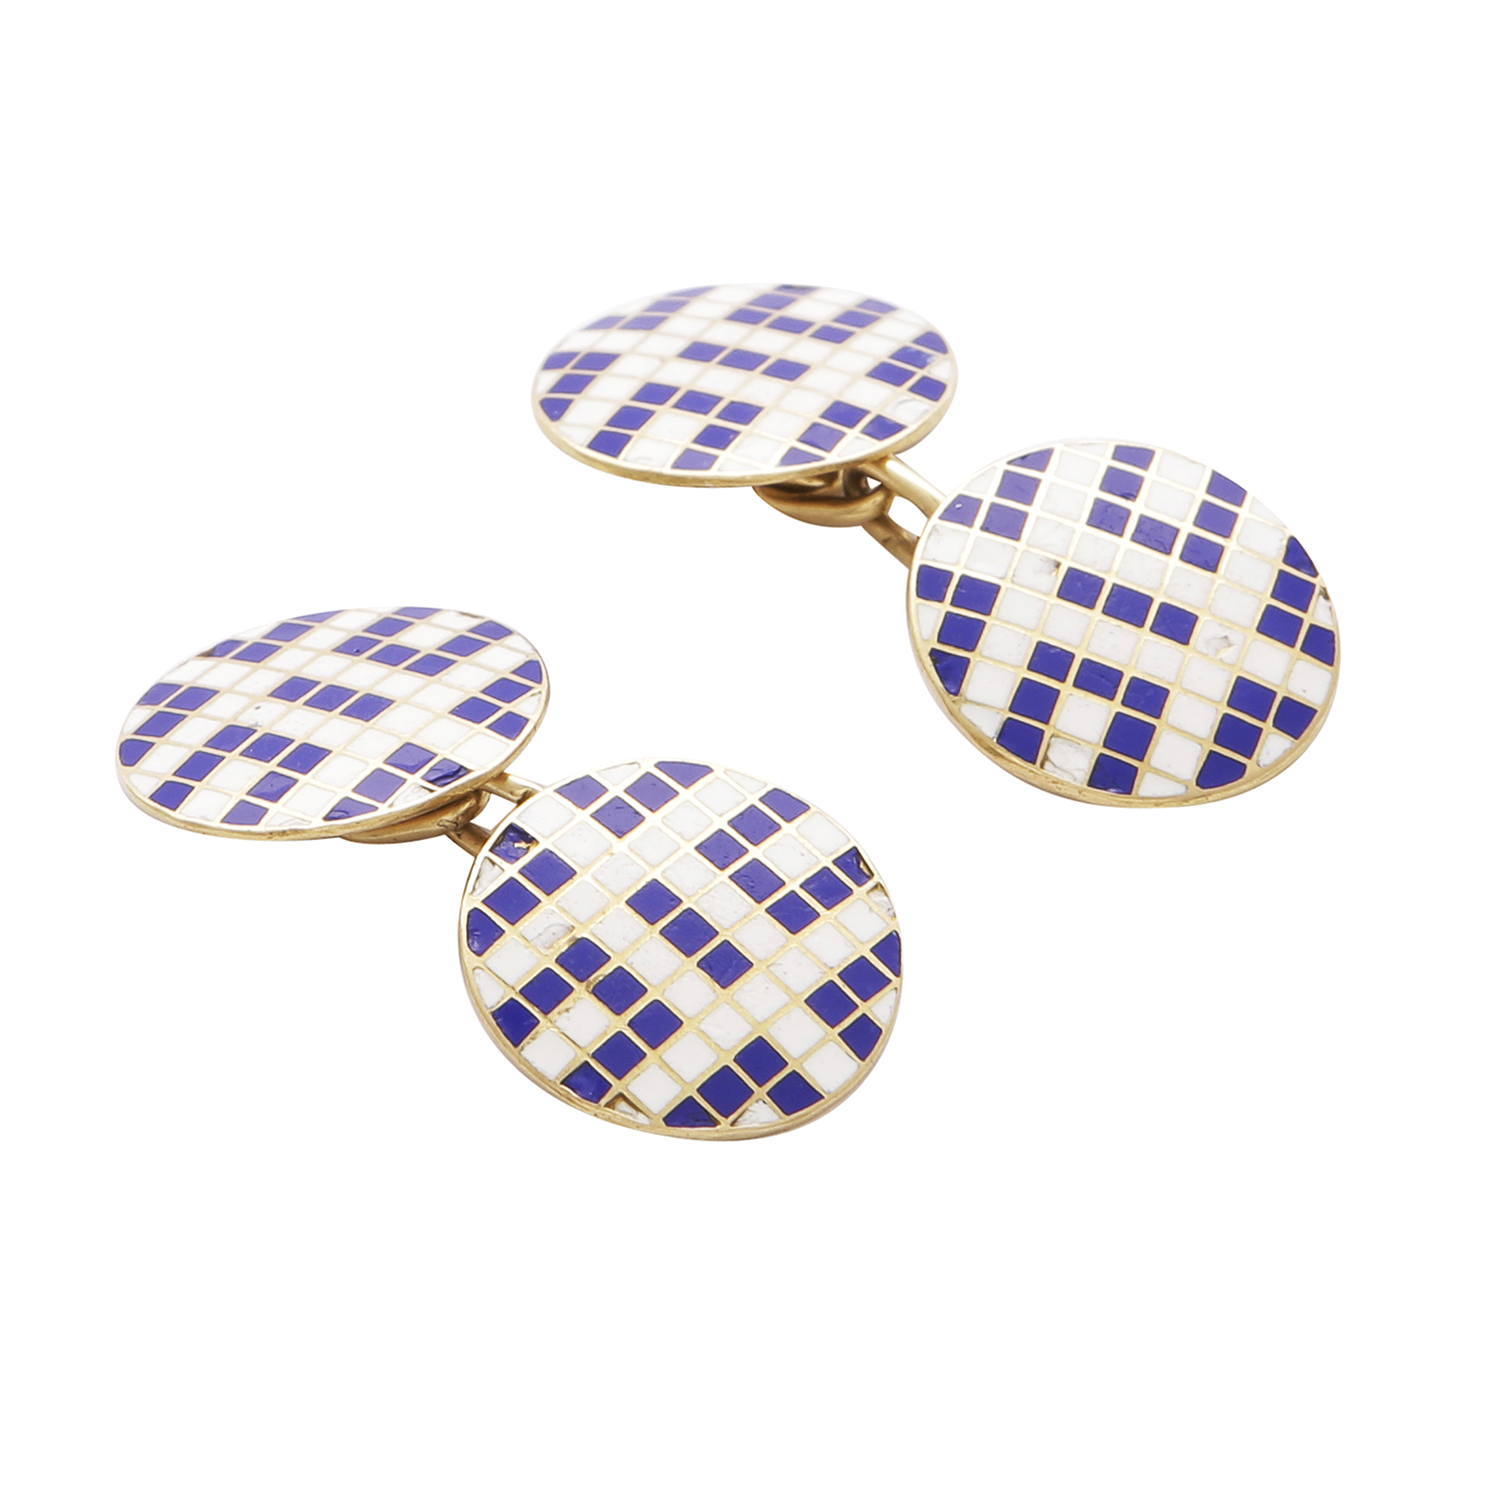 Los 57 - A PAIR OF VINTAGE ENAMELLED CUFFLINKS in 18ct yellow gold, each formed of two circular links with